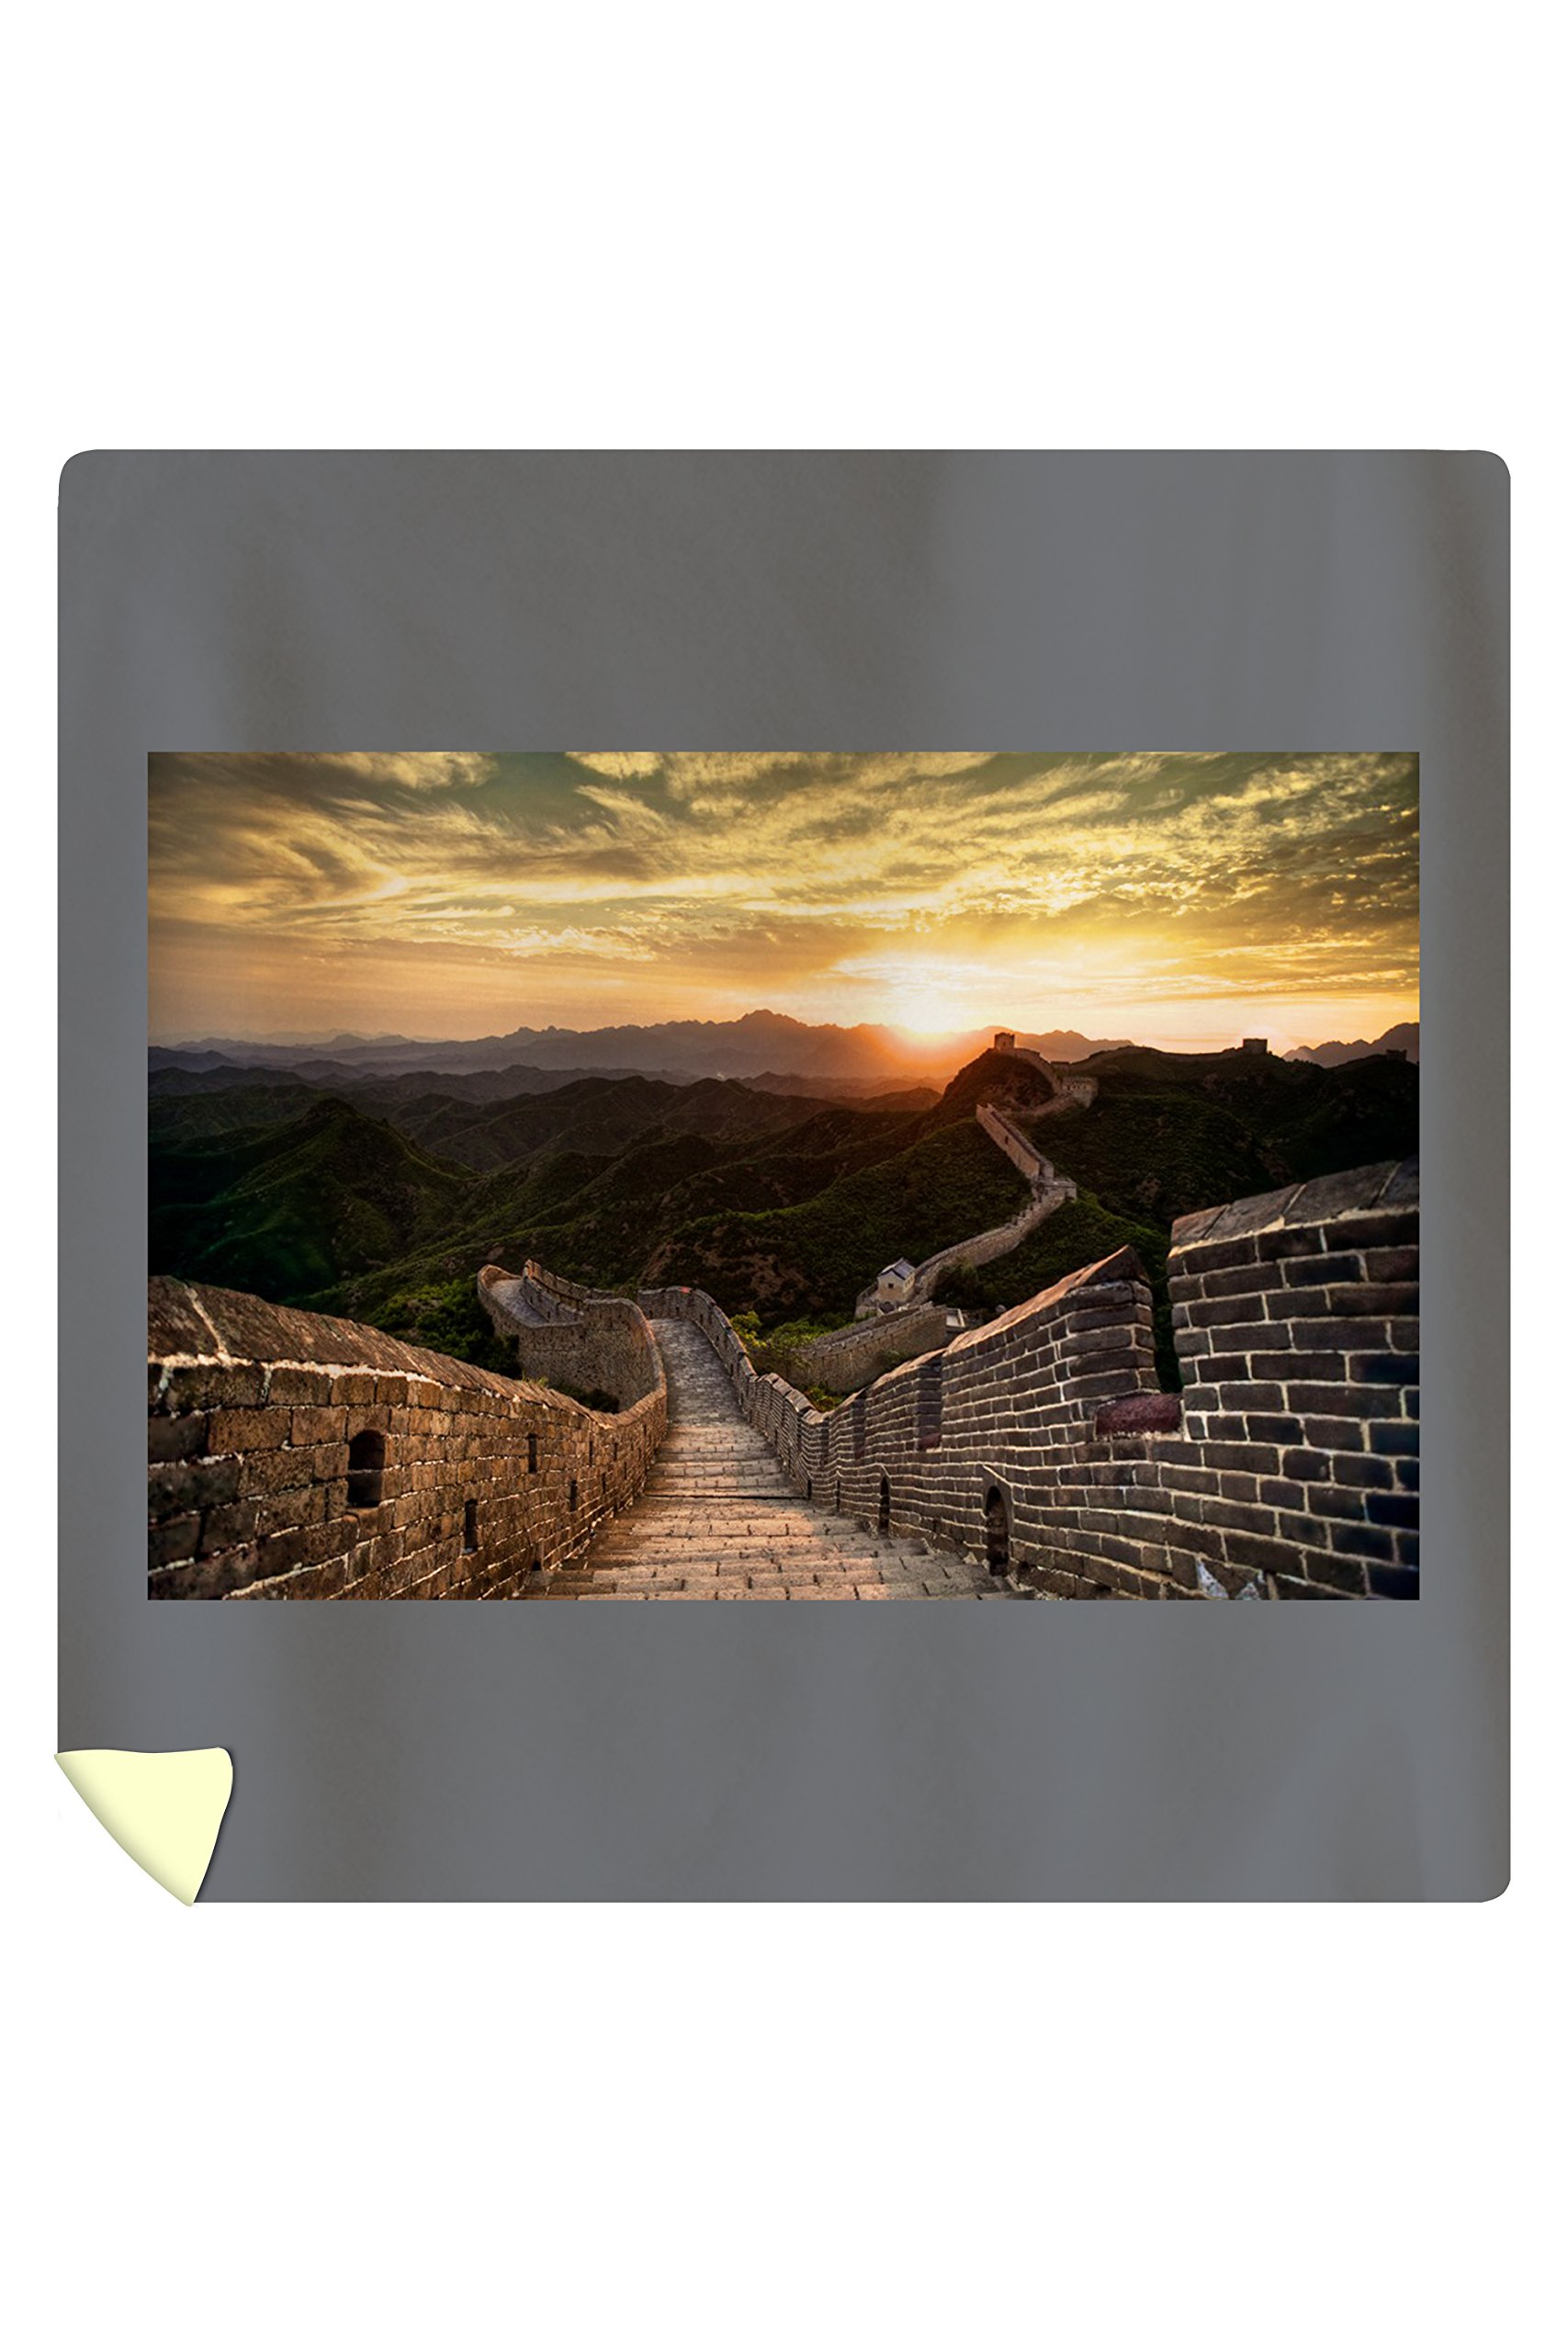 Great Wall of China - Sunset (88x88 Queen Microfiber Duvet Cover)